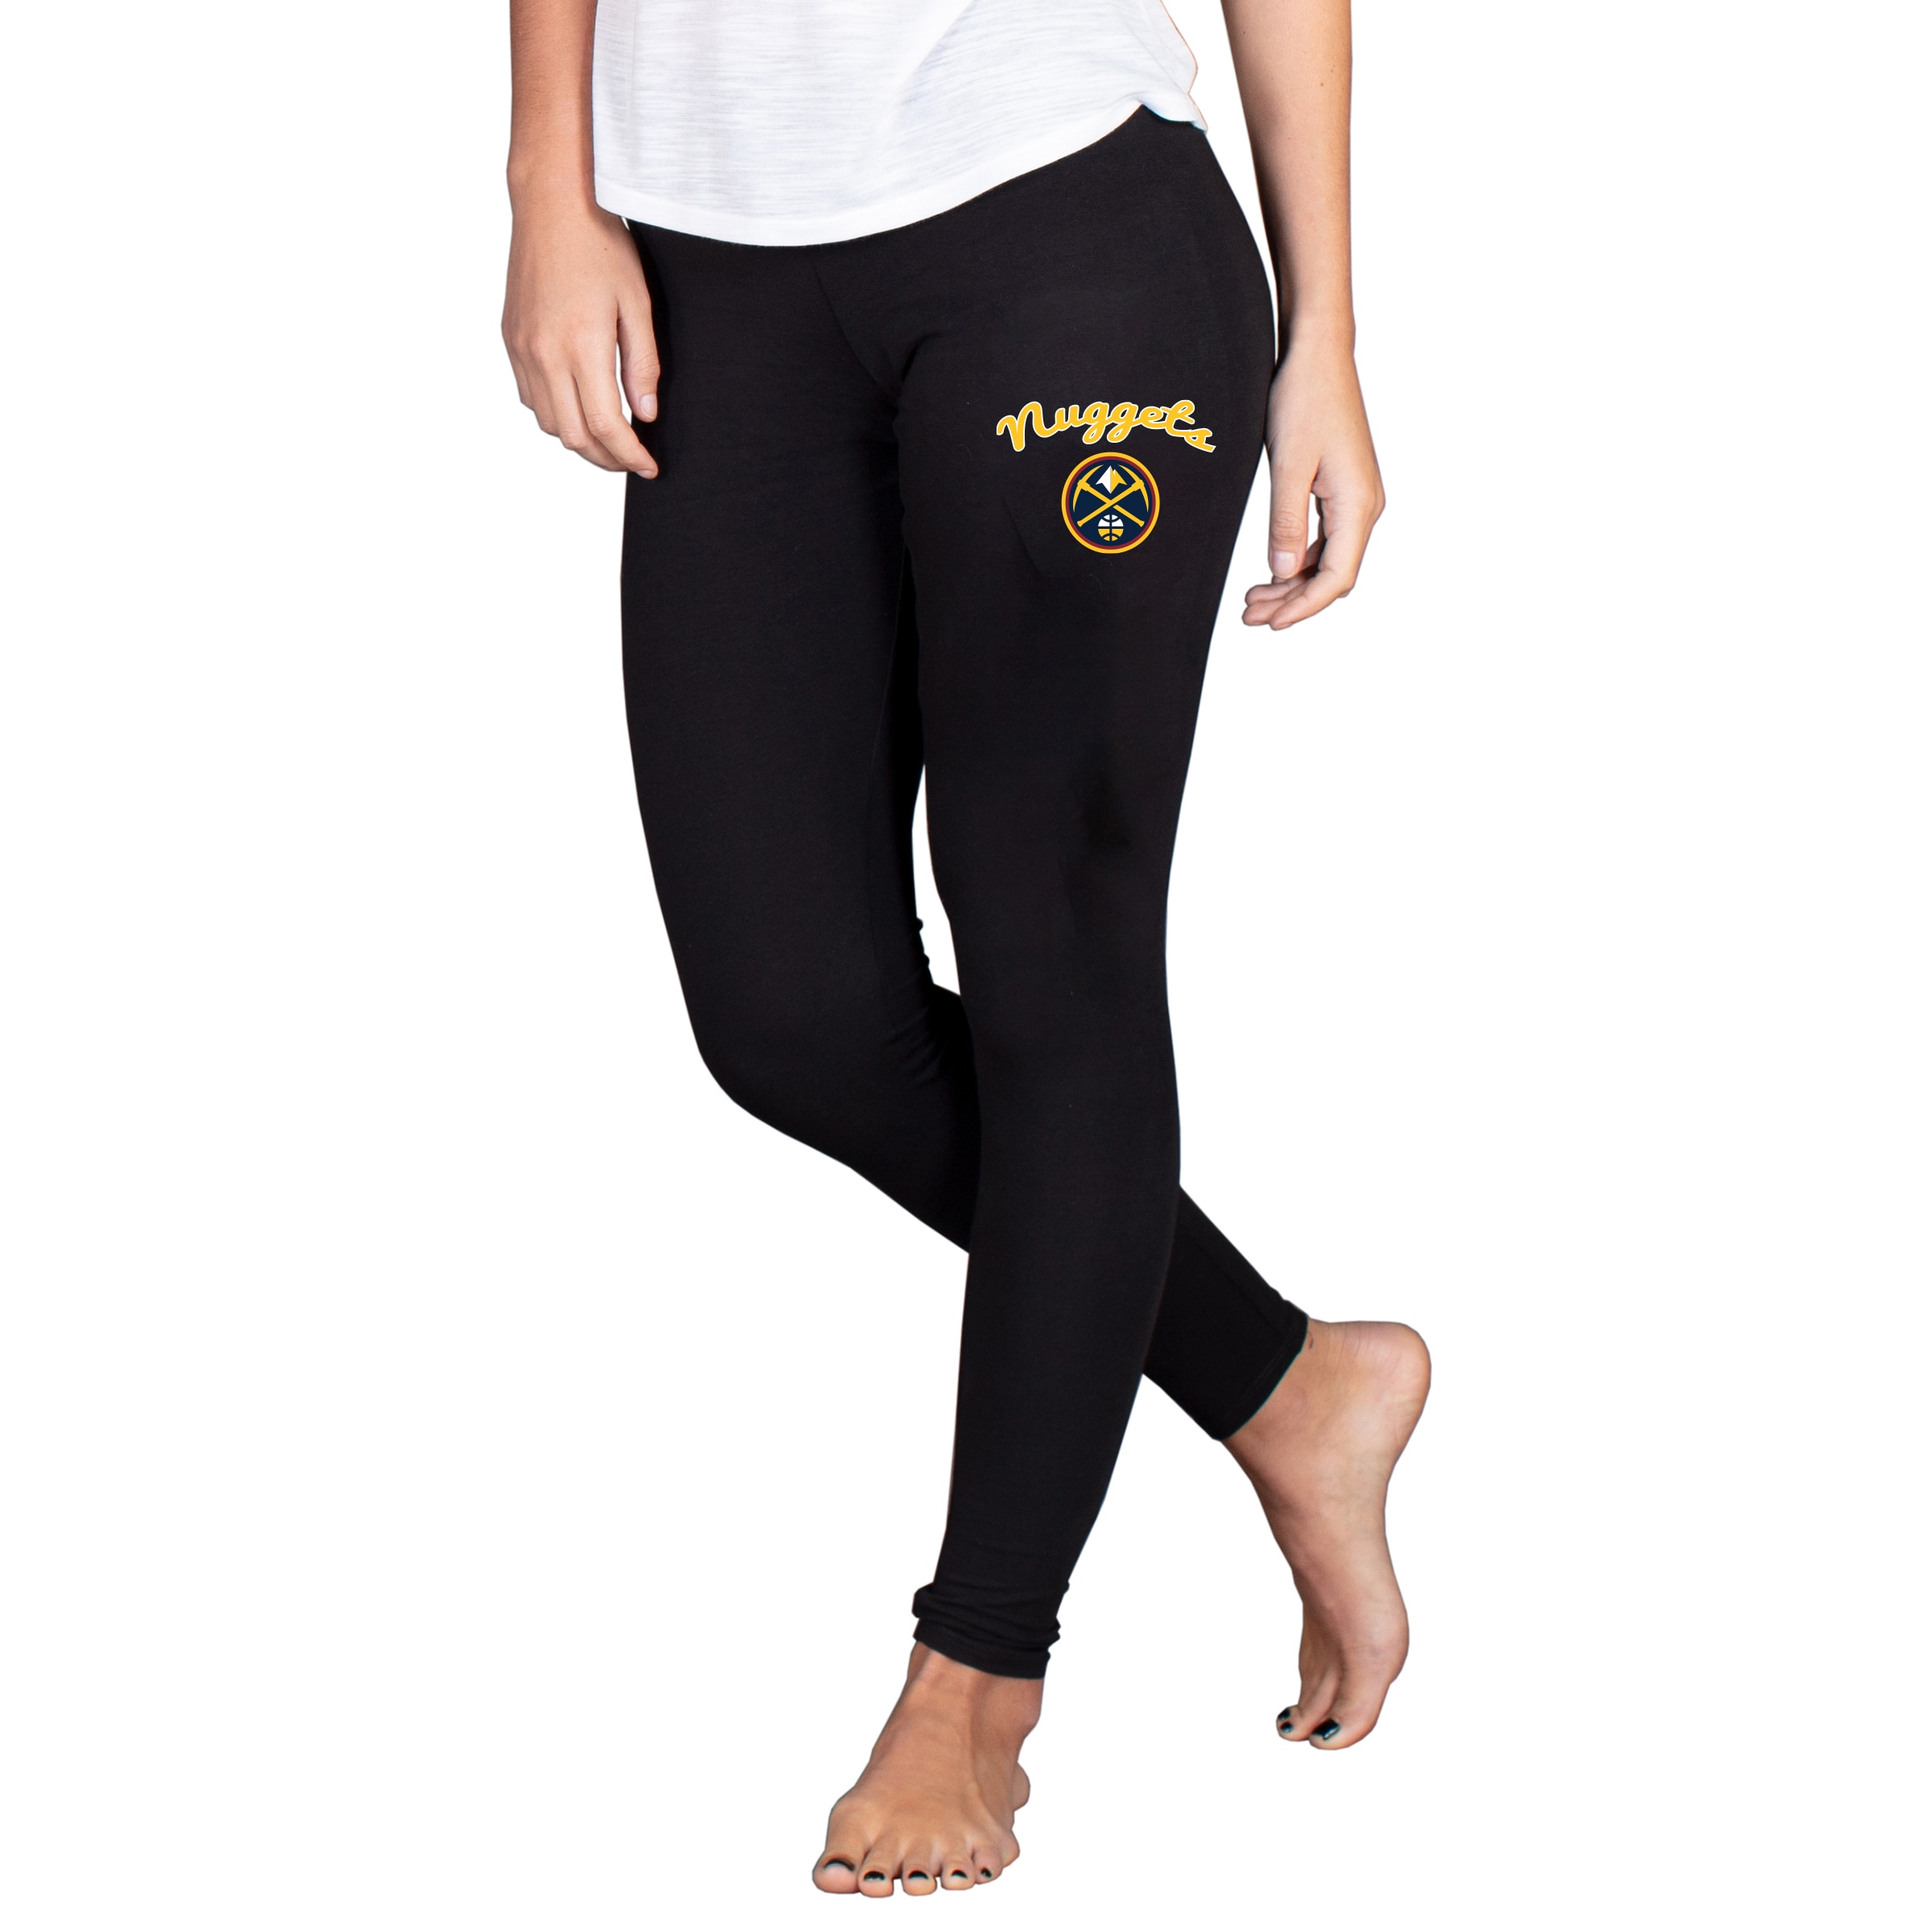 Denver Nuggets Concepts Sport Women's Fraction Leggings - Black